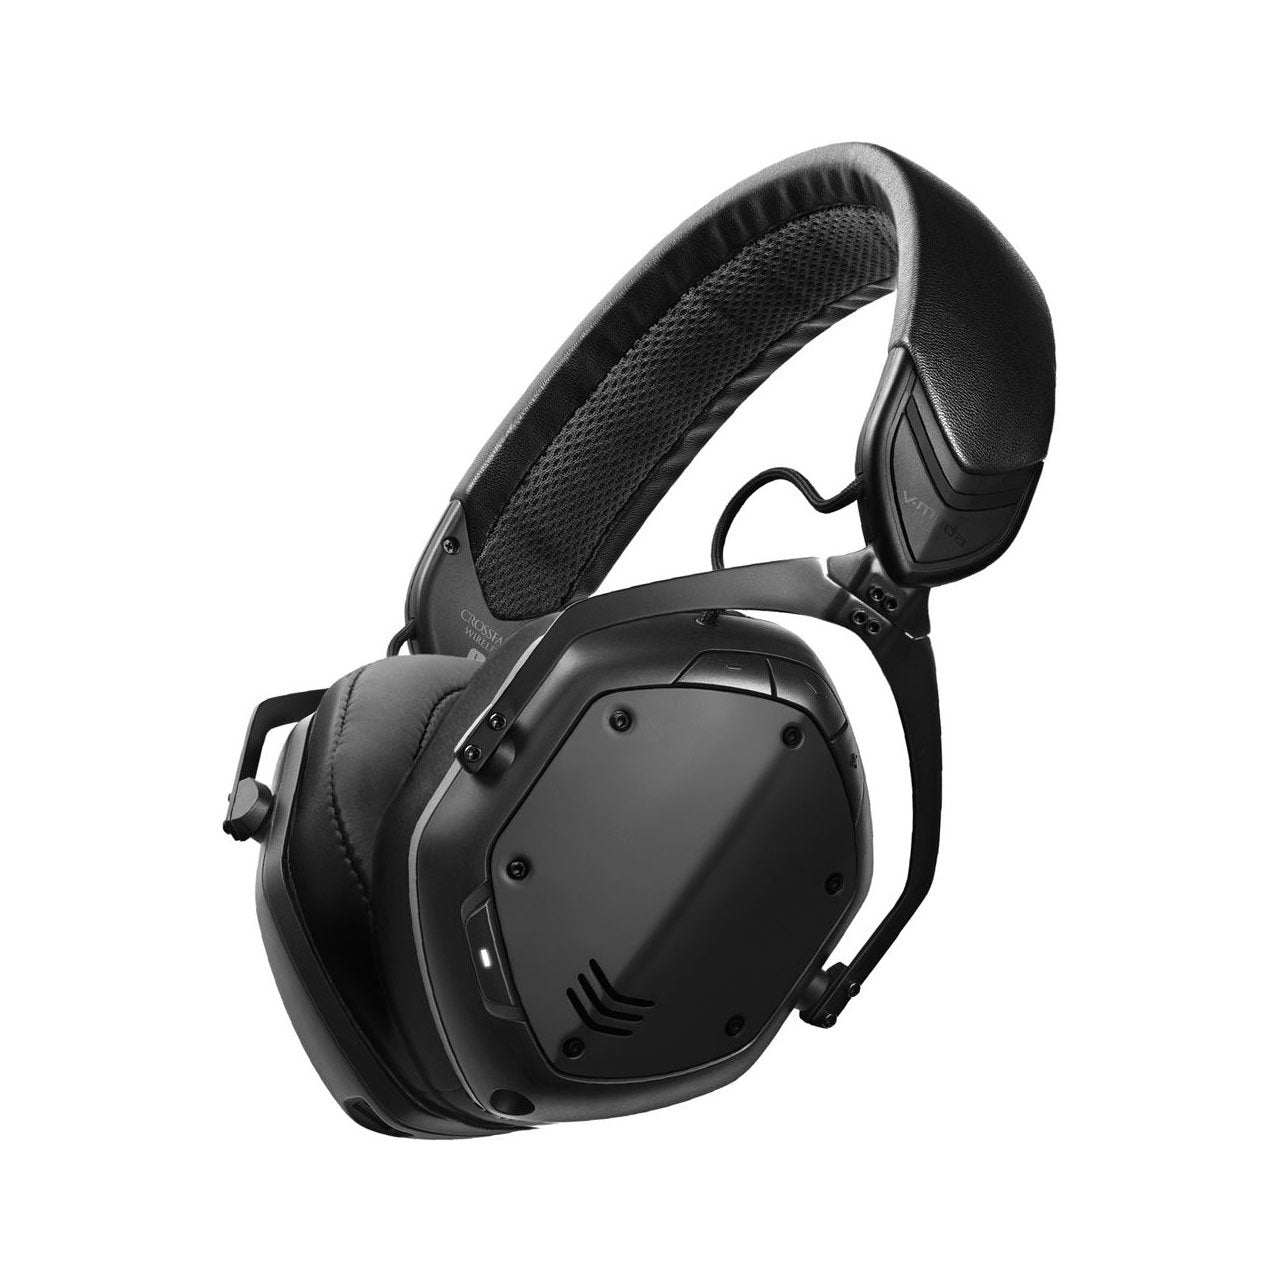 V-Moda Crossfade II Wireless Headphones